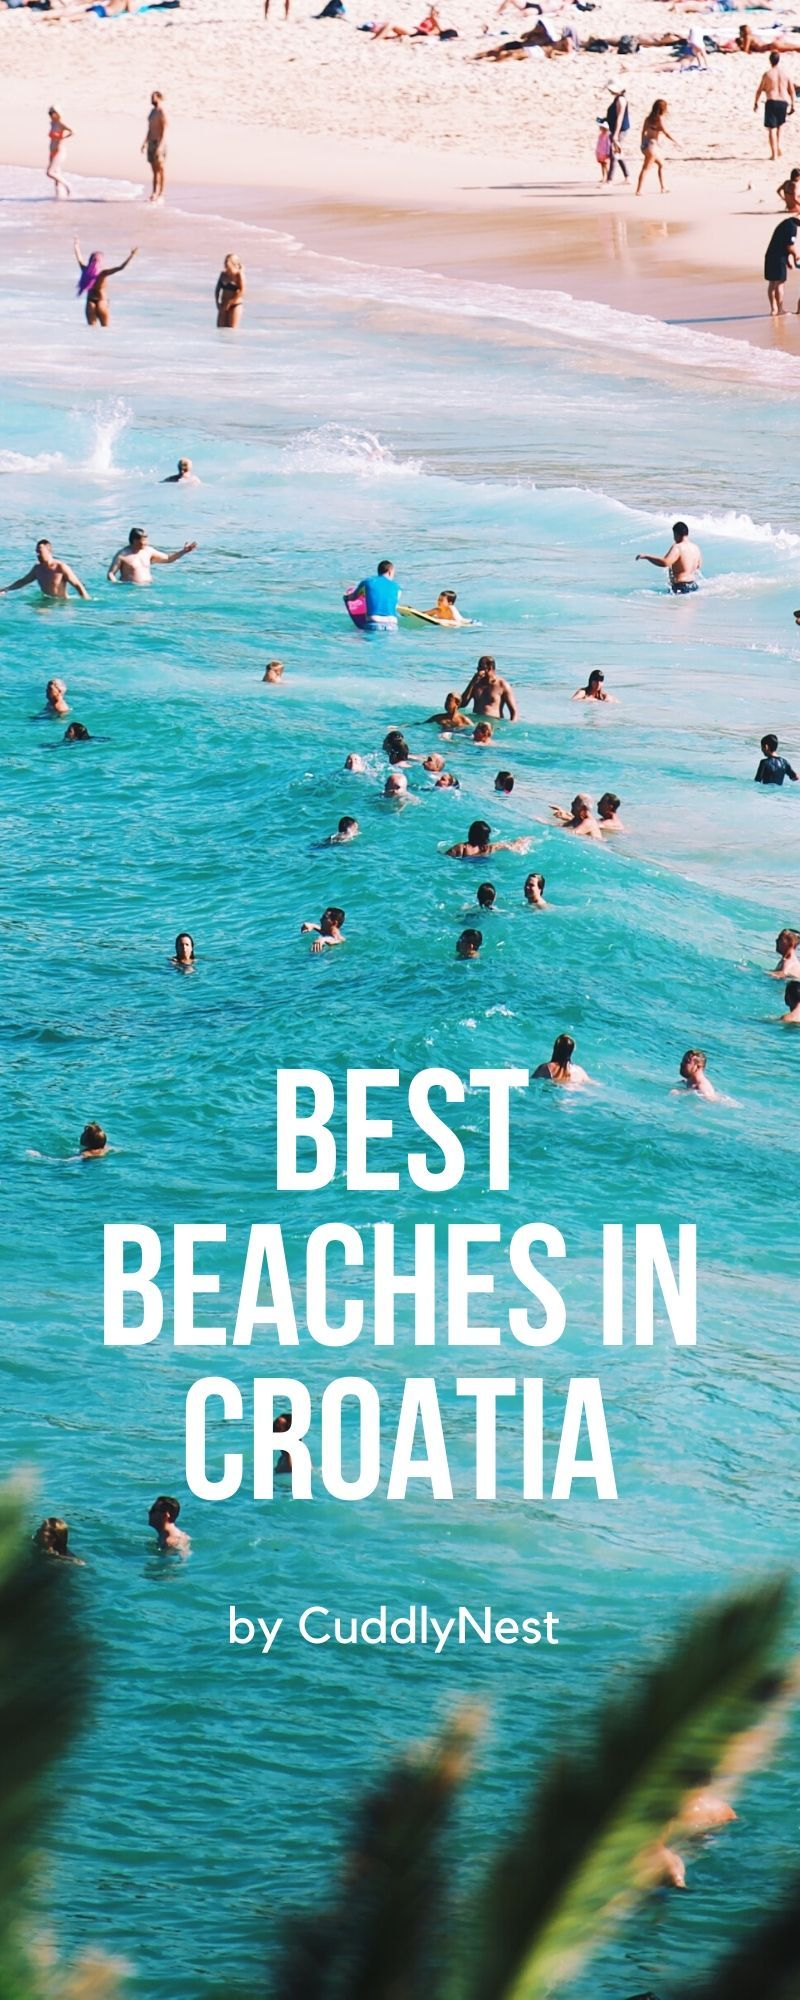 Where Is The Best Beach To Go On Christmas 2020 A Balkan Getaway: Health and Wellness   CuddlyNest | Europe travel